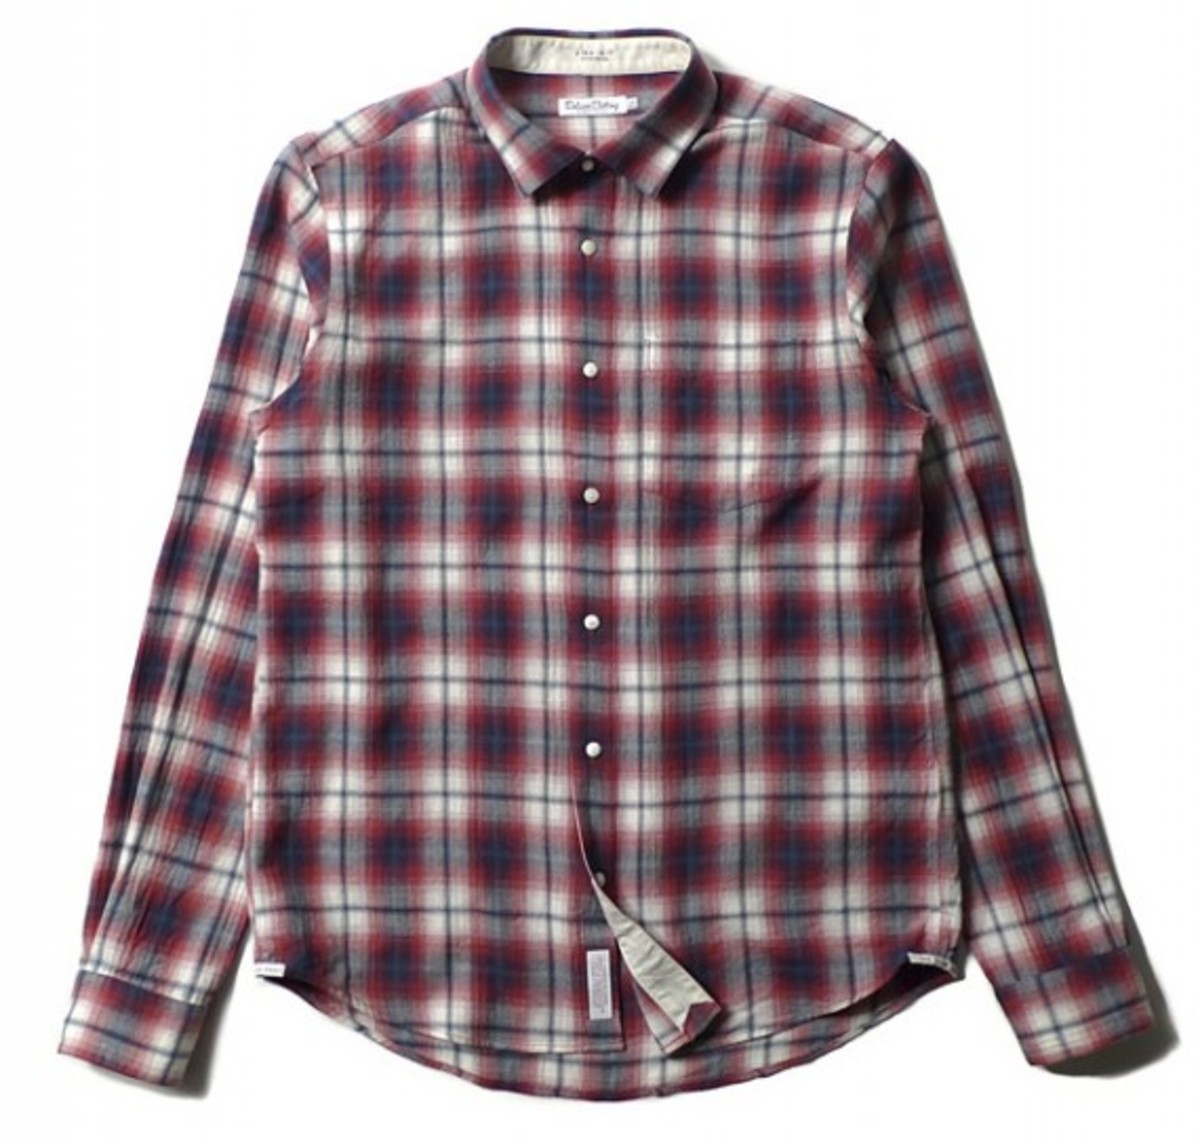 deluxe-greyhound-check-shirt-red-01